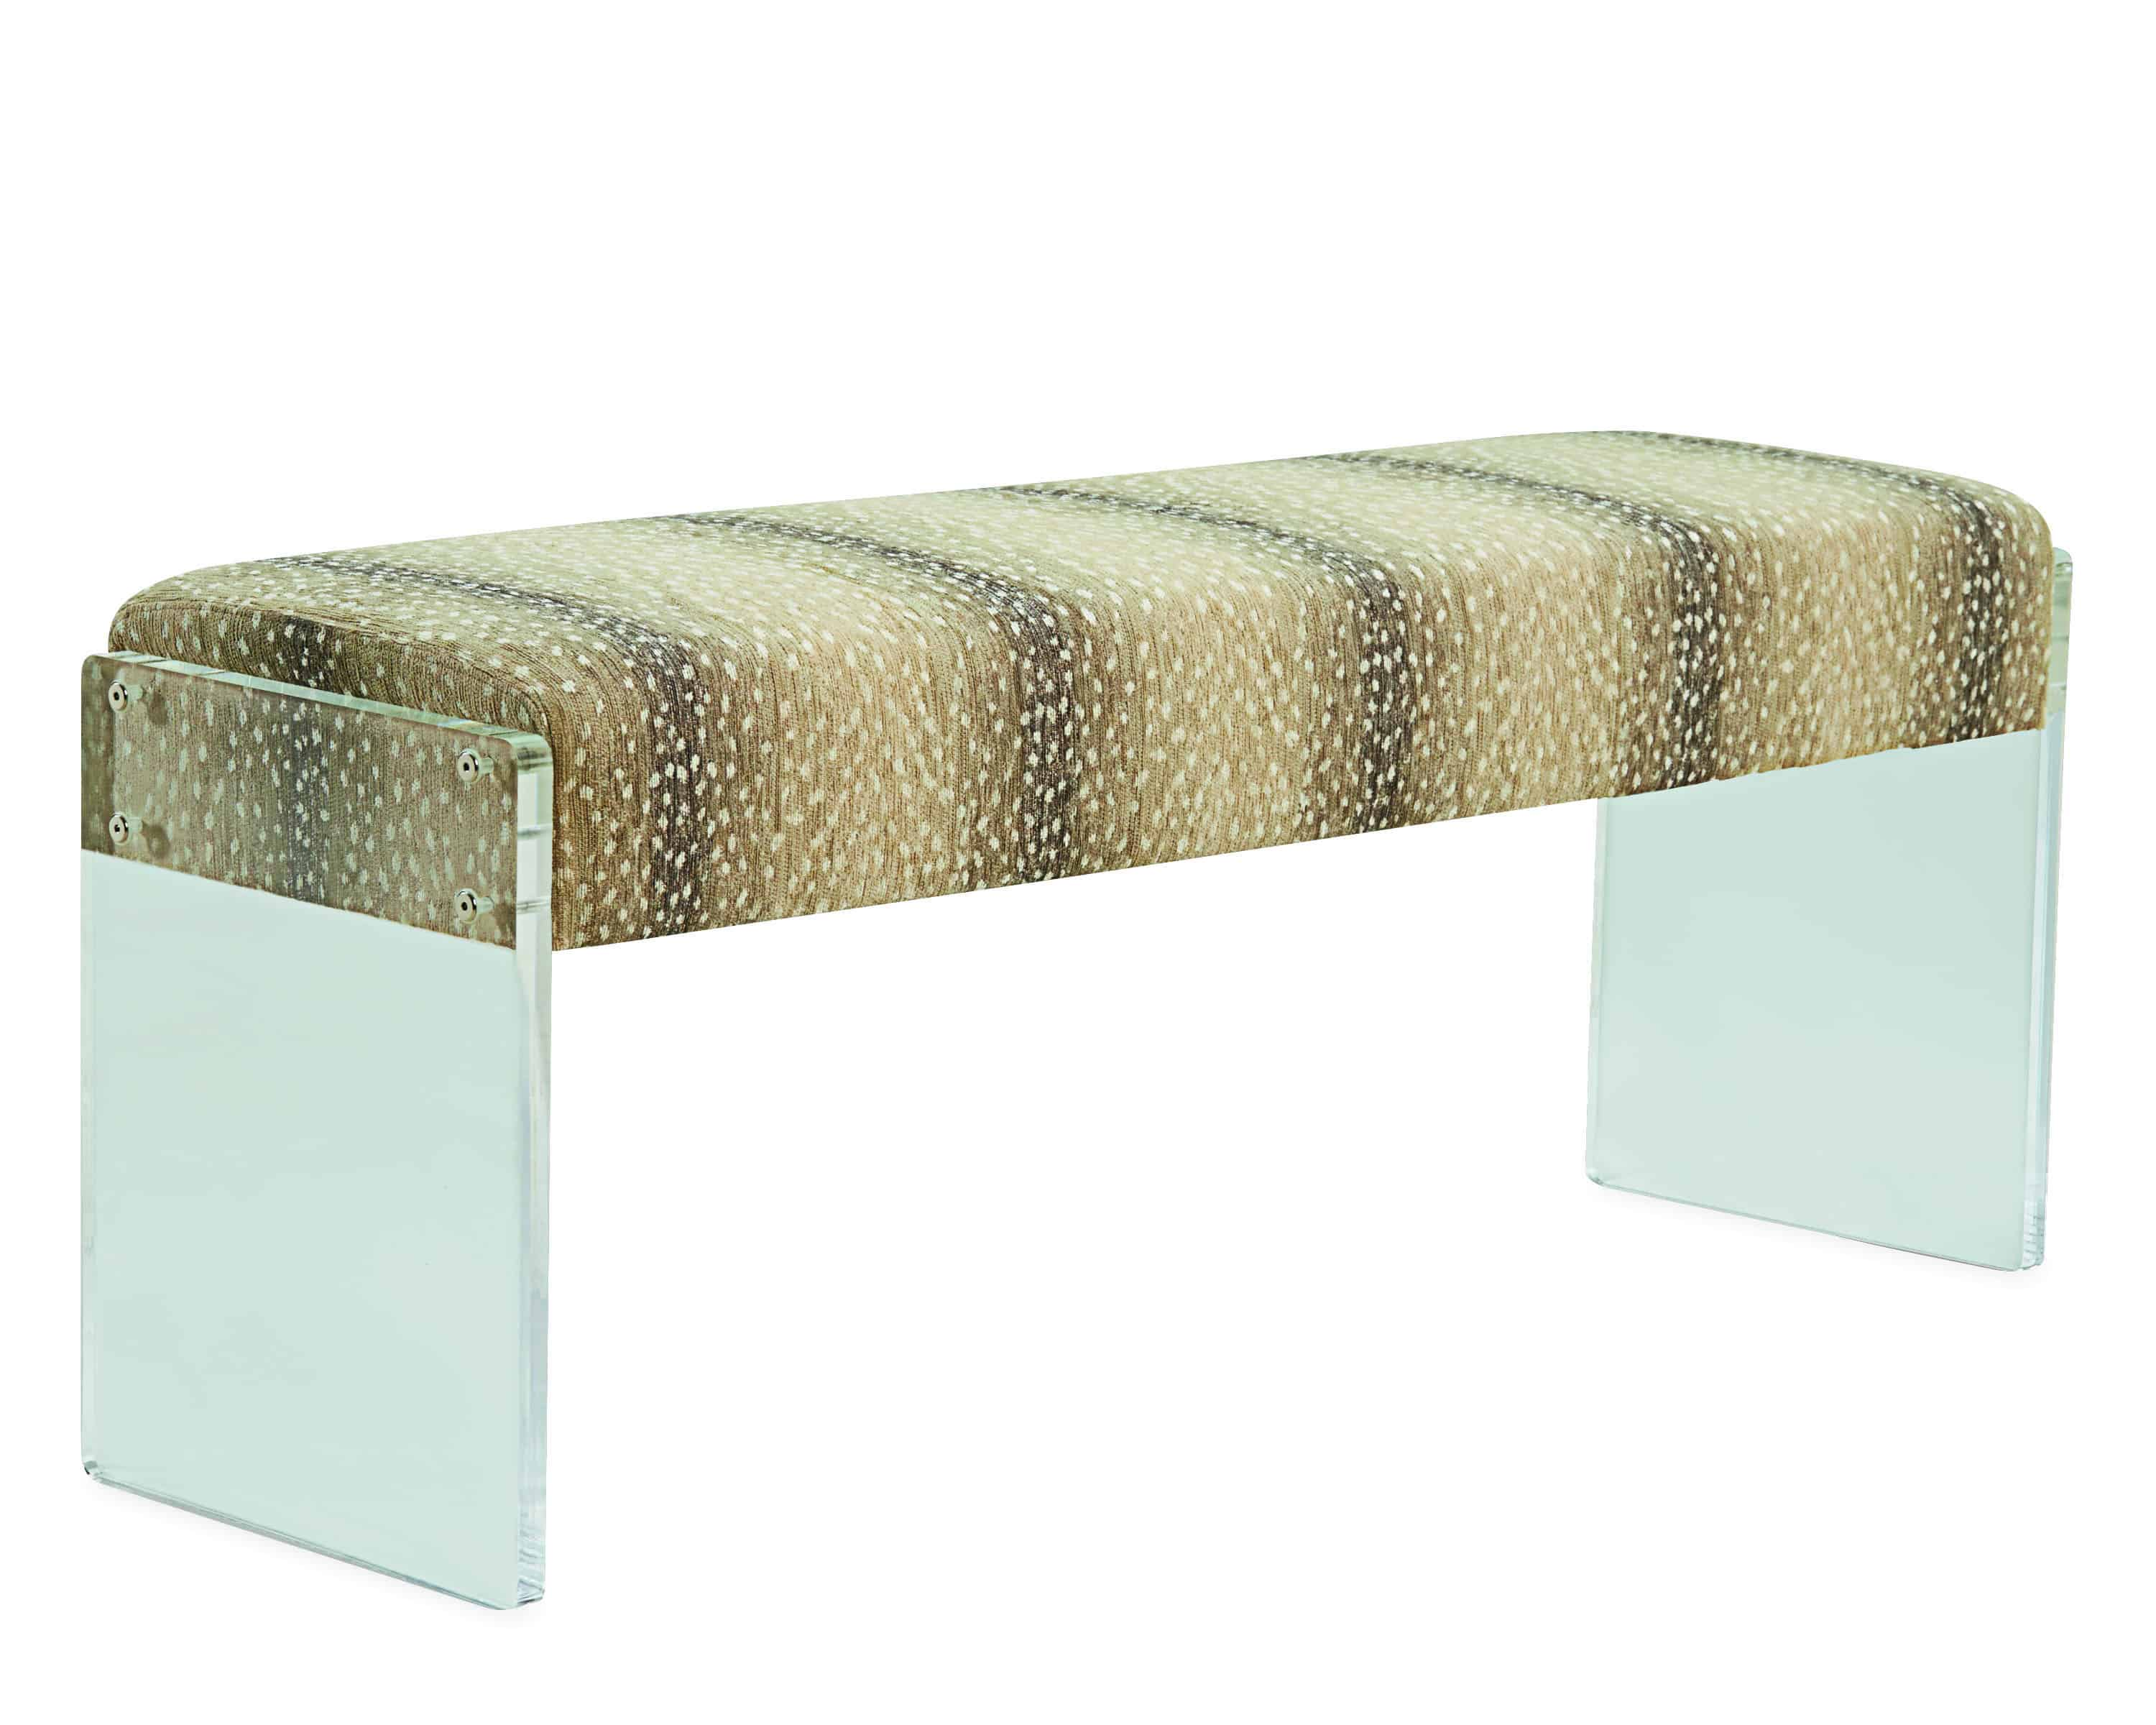 LEE Acrylic Antelope Printed Bench